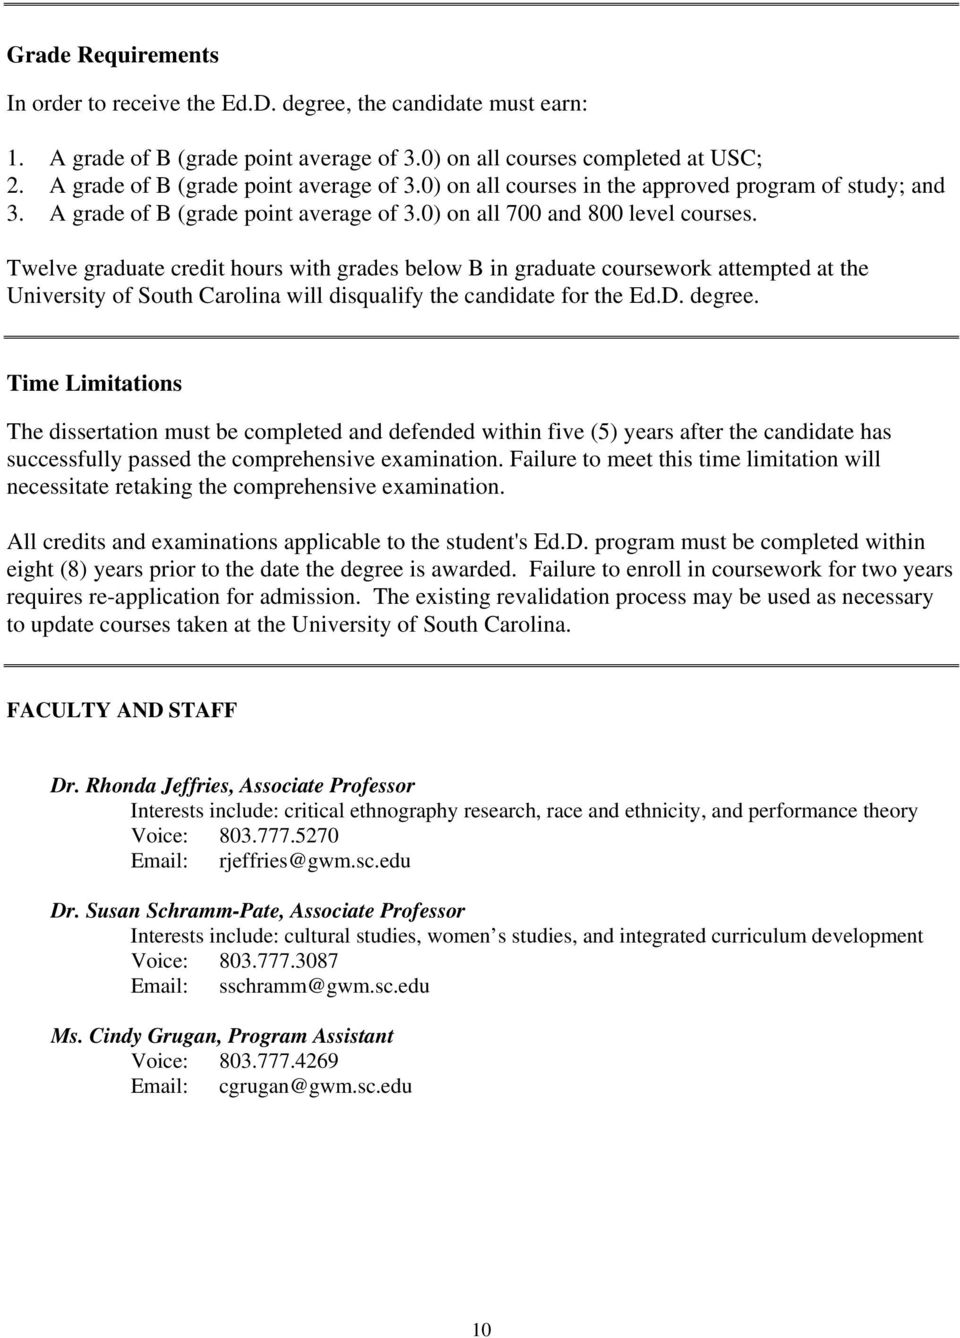 Twelve graduate credit hours with grades below B in graduate coursework attempted at the University of South Carolina will disqualify the candidate for the Ed.D. degree.